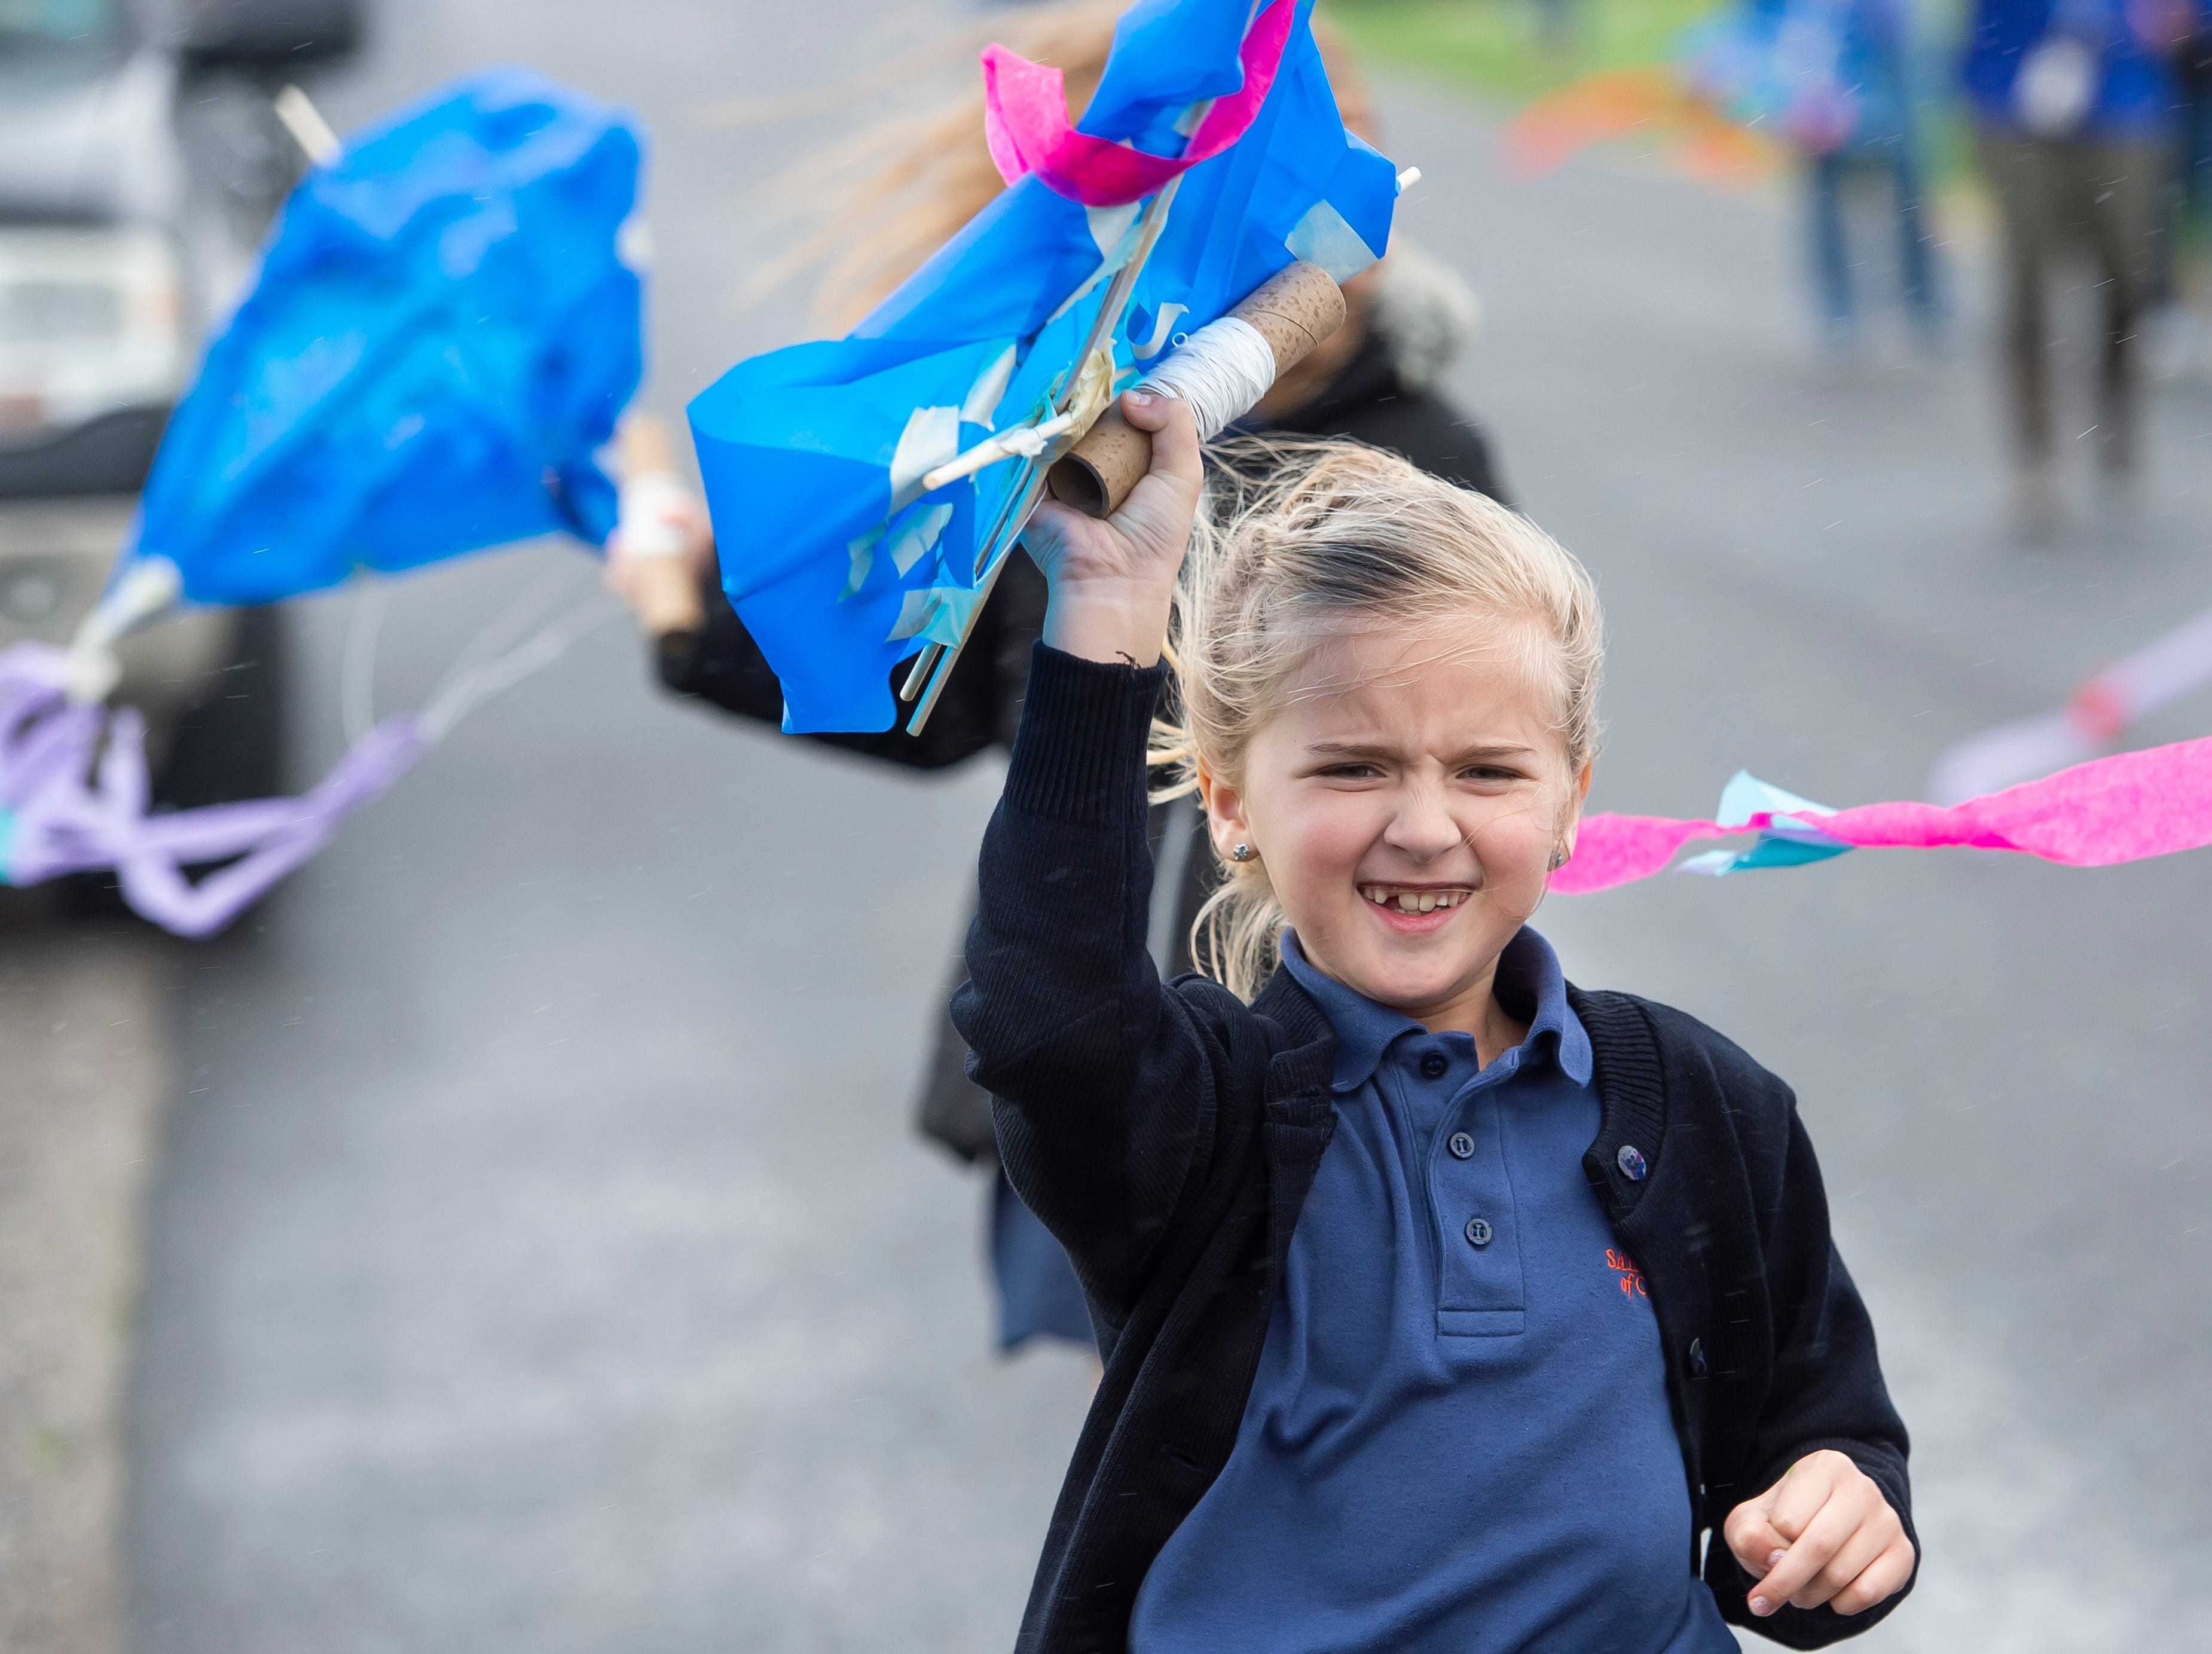 Students from St. Teresa of Calcutta Catholic School use their homemade kites to shield themselves from the rain at the school's Conewago campus on Friday, April 12, 2019.